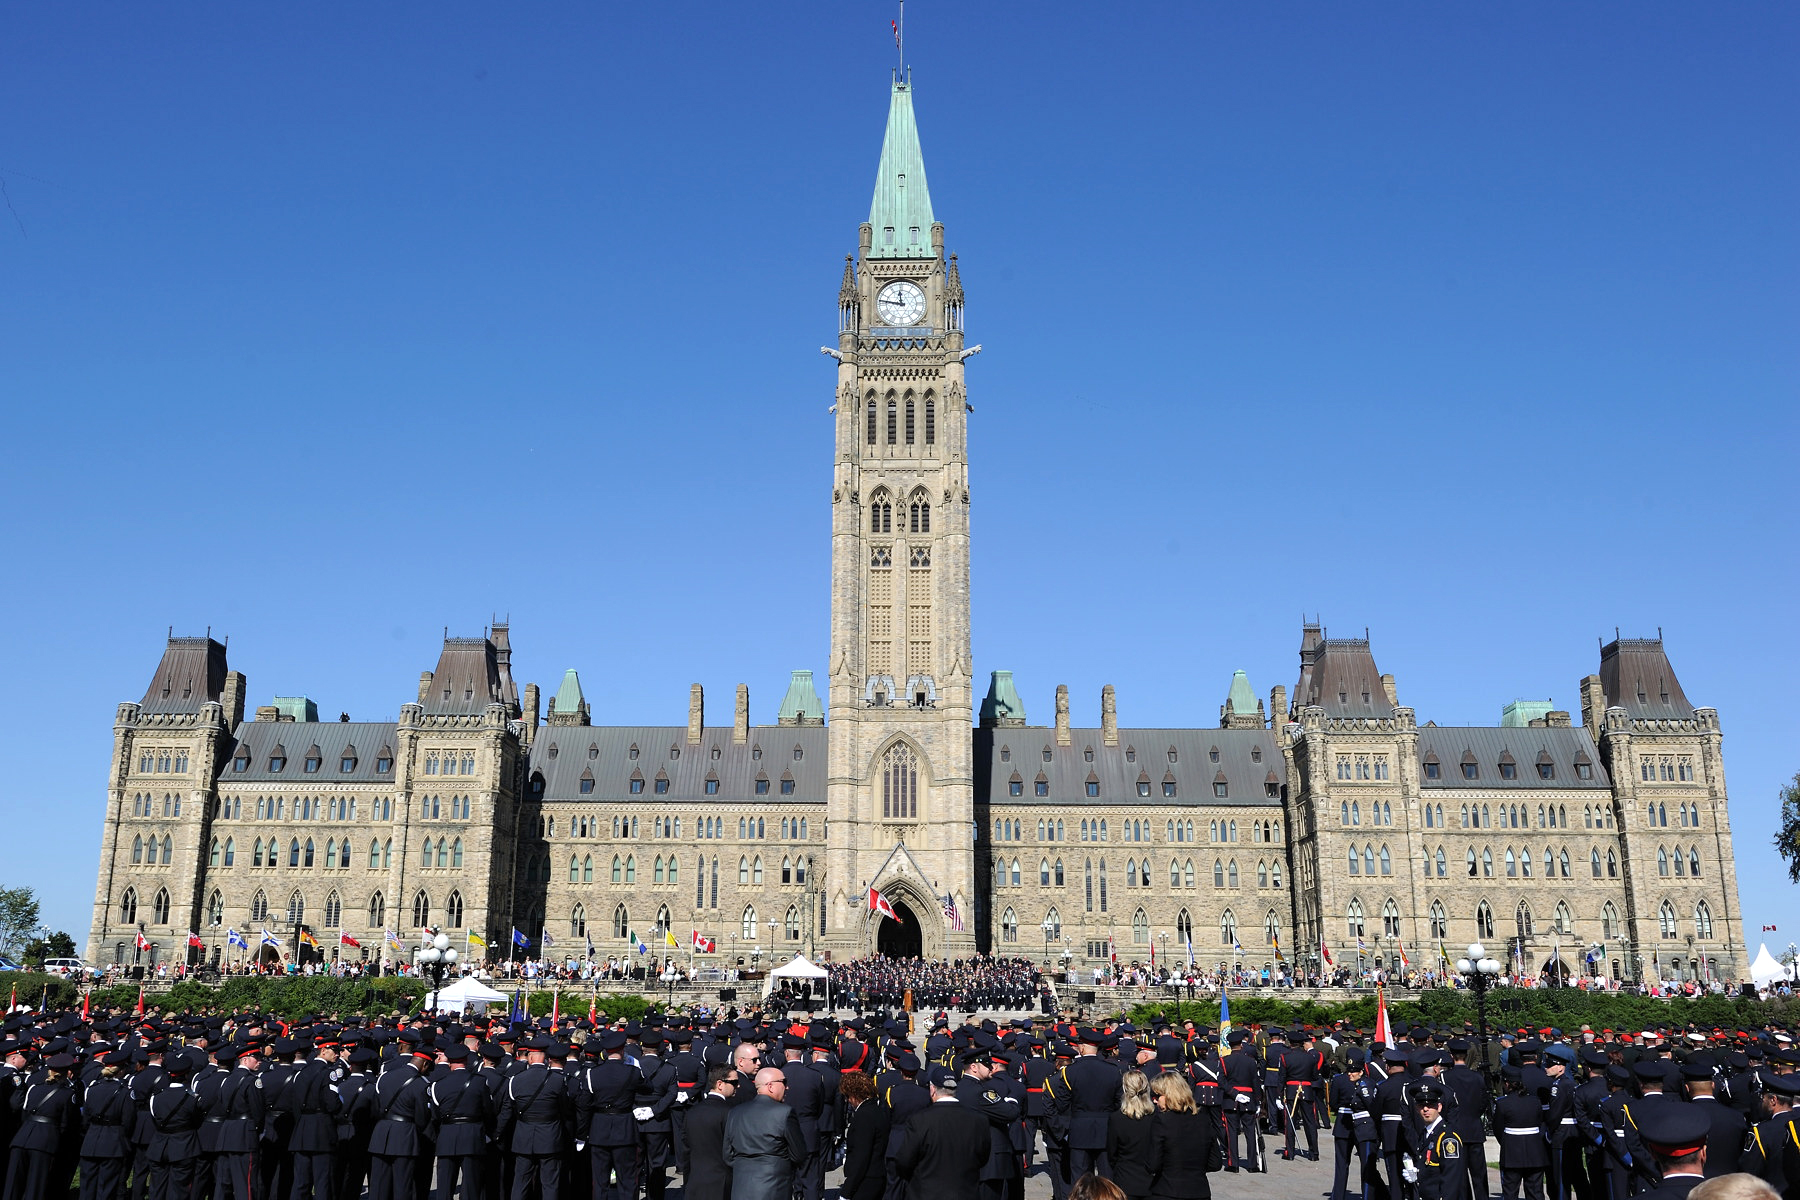 Police and peace officers from across Canada and the United States gathered on Parliament Hill to take part in the Canadian Police and Peace Officers' 34th Annual Memorial Service.